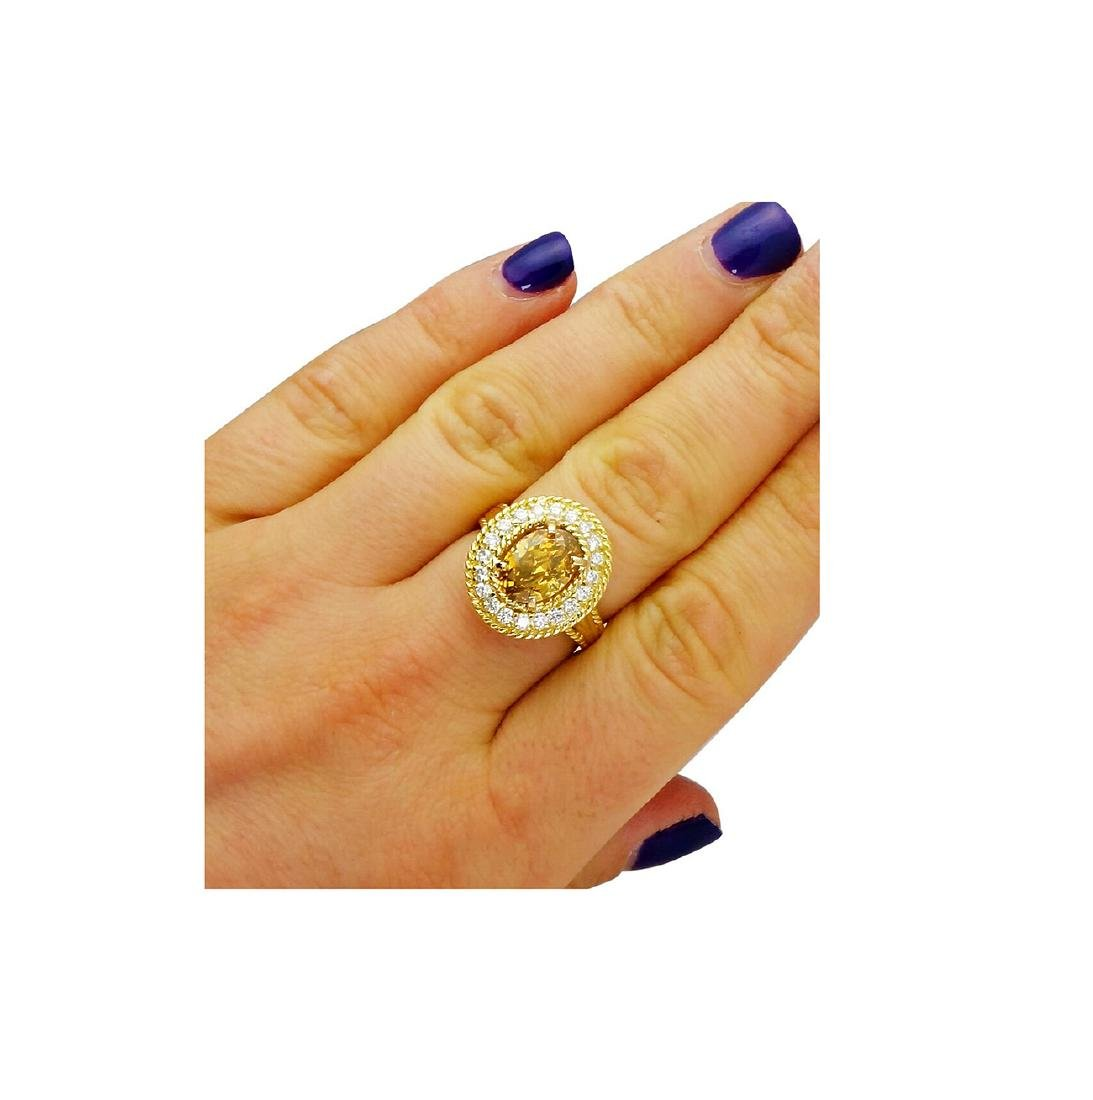 Tiffany & Co. 18K Gold GIA 2.51TCW Yellow Diamond Ring - 8